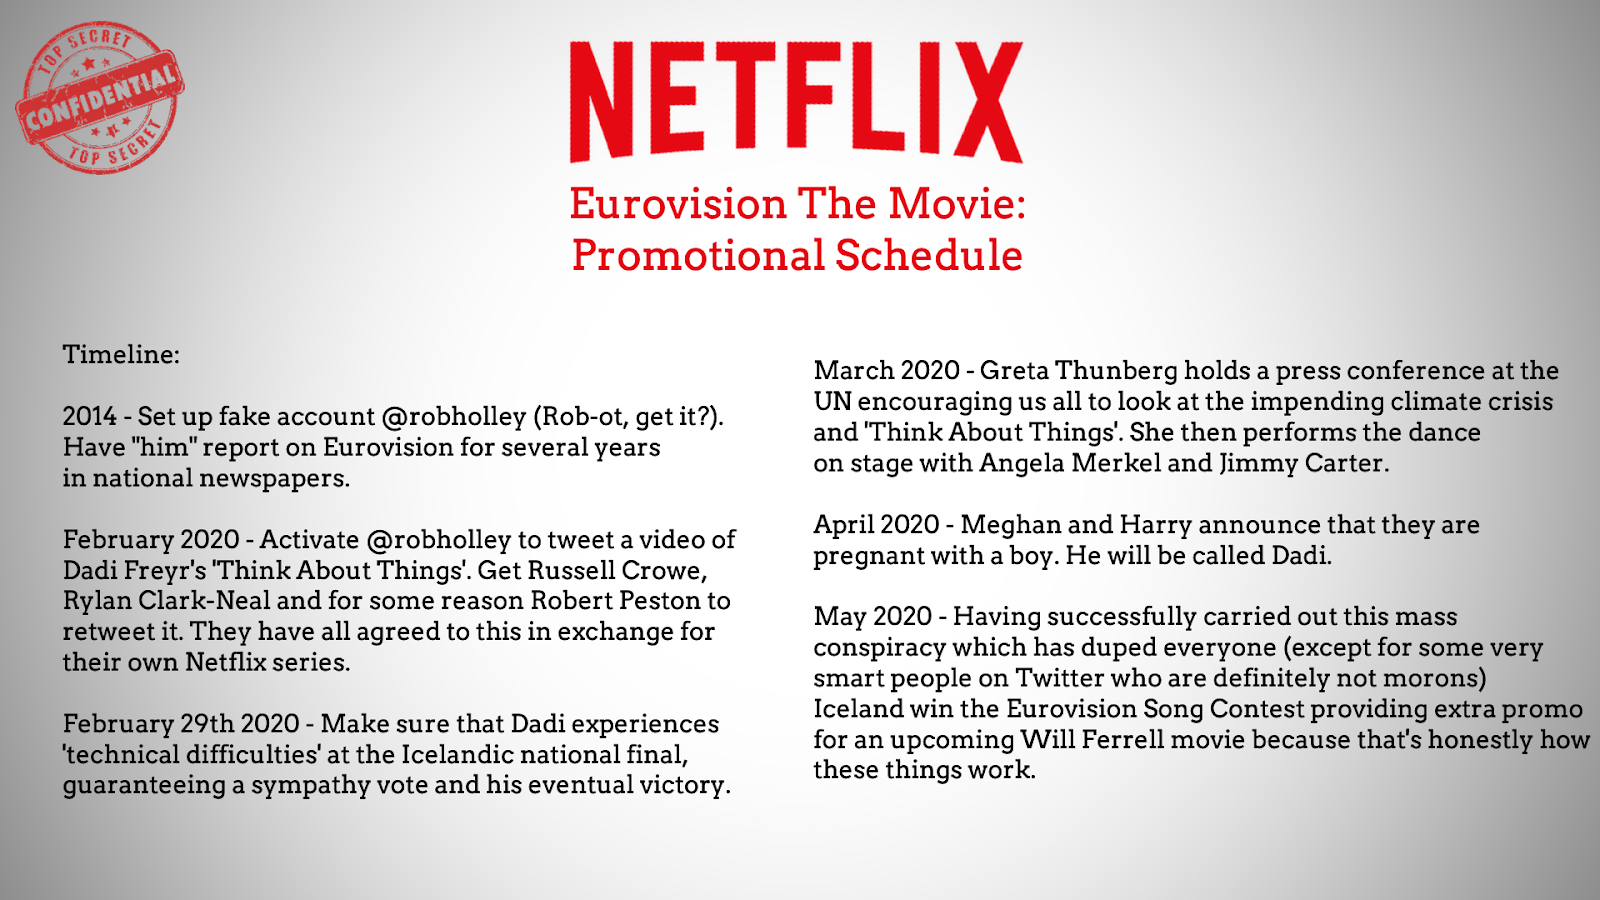 The proposed schedule for Netflix's Eurovision movie conspiracry... don't take it too seriously.